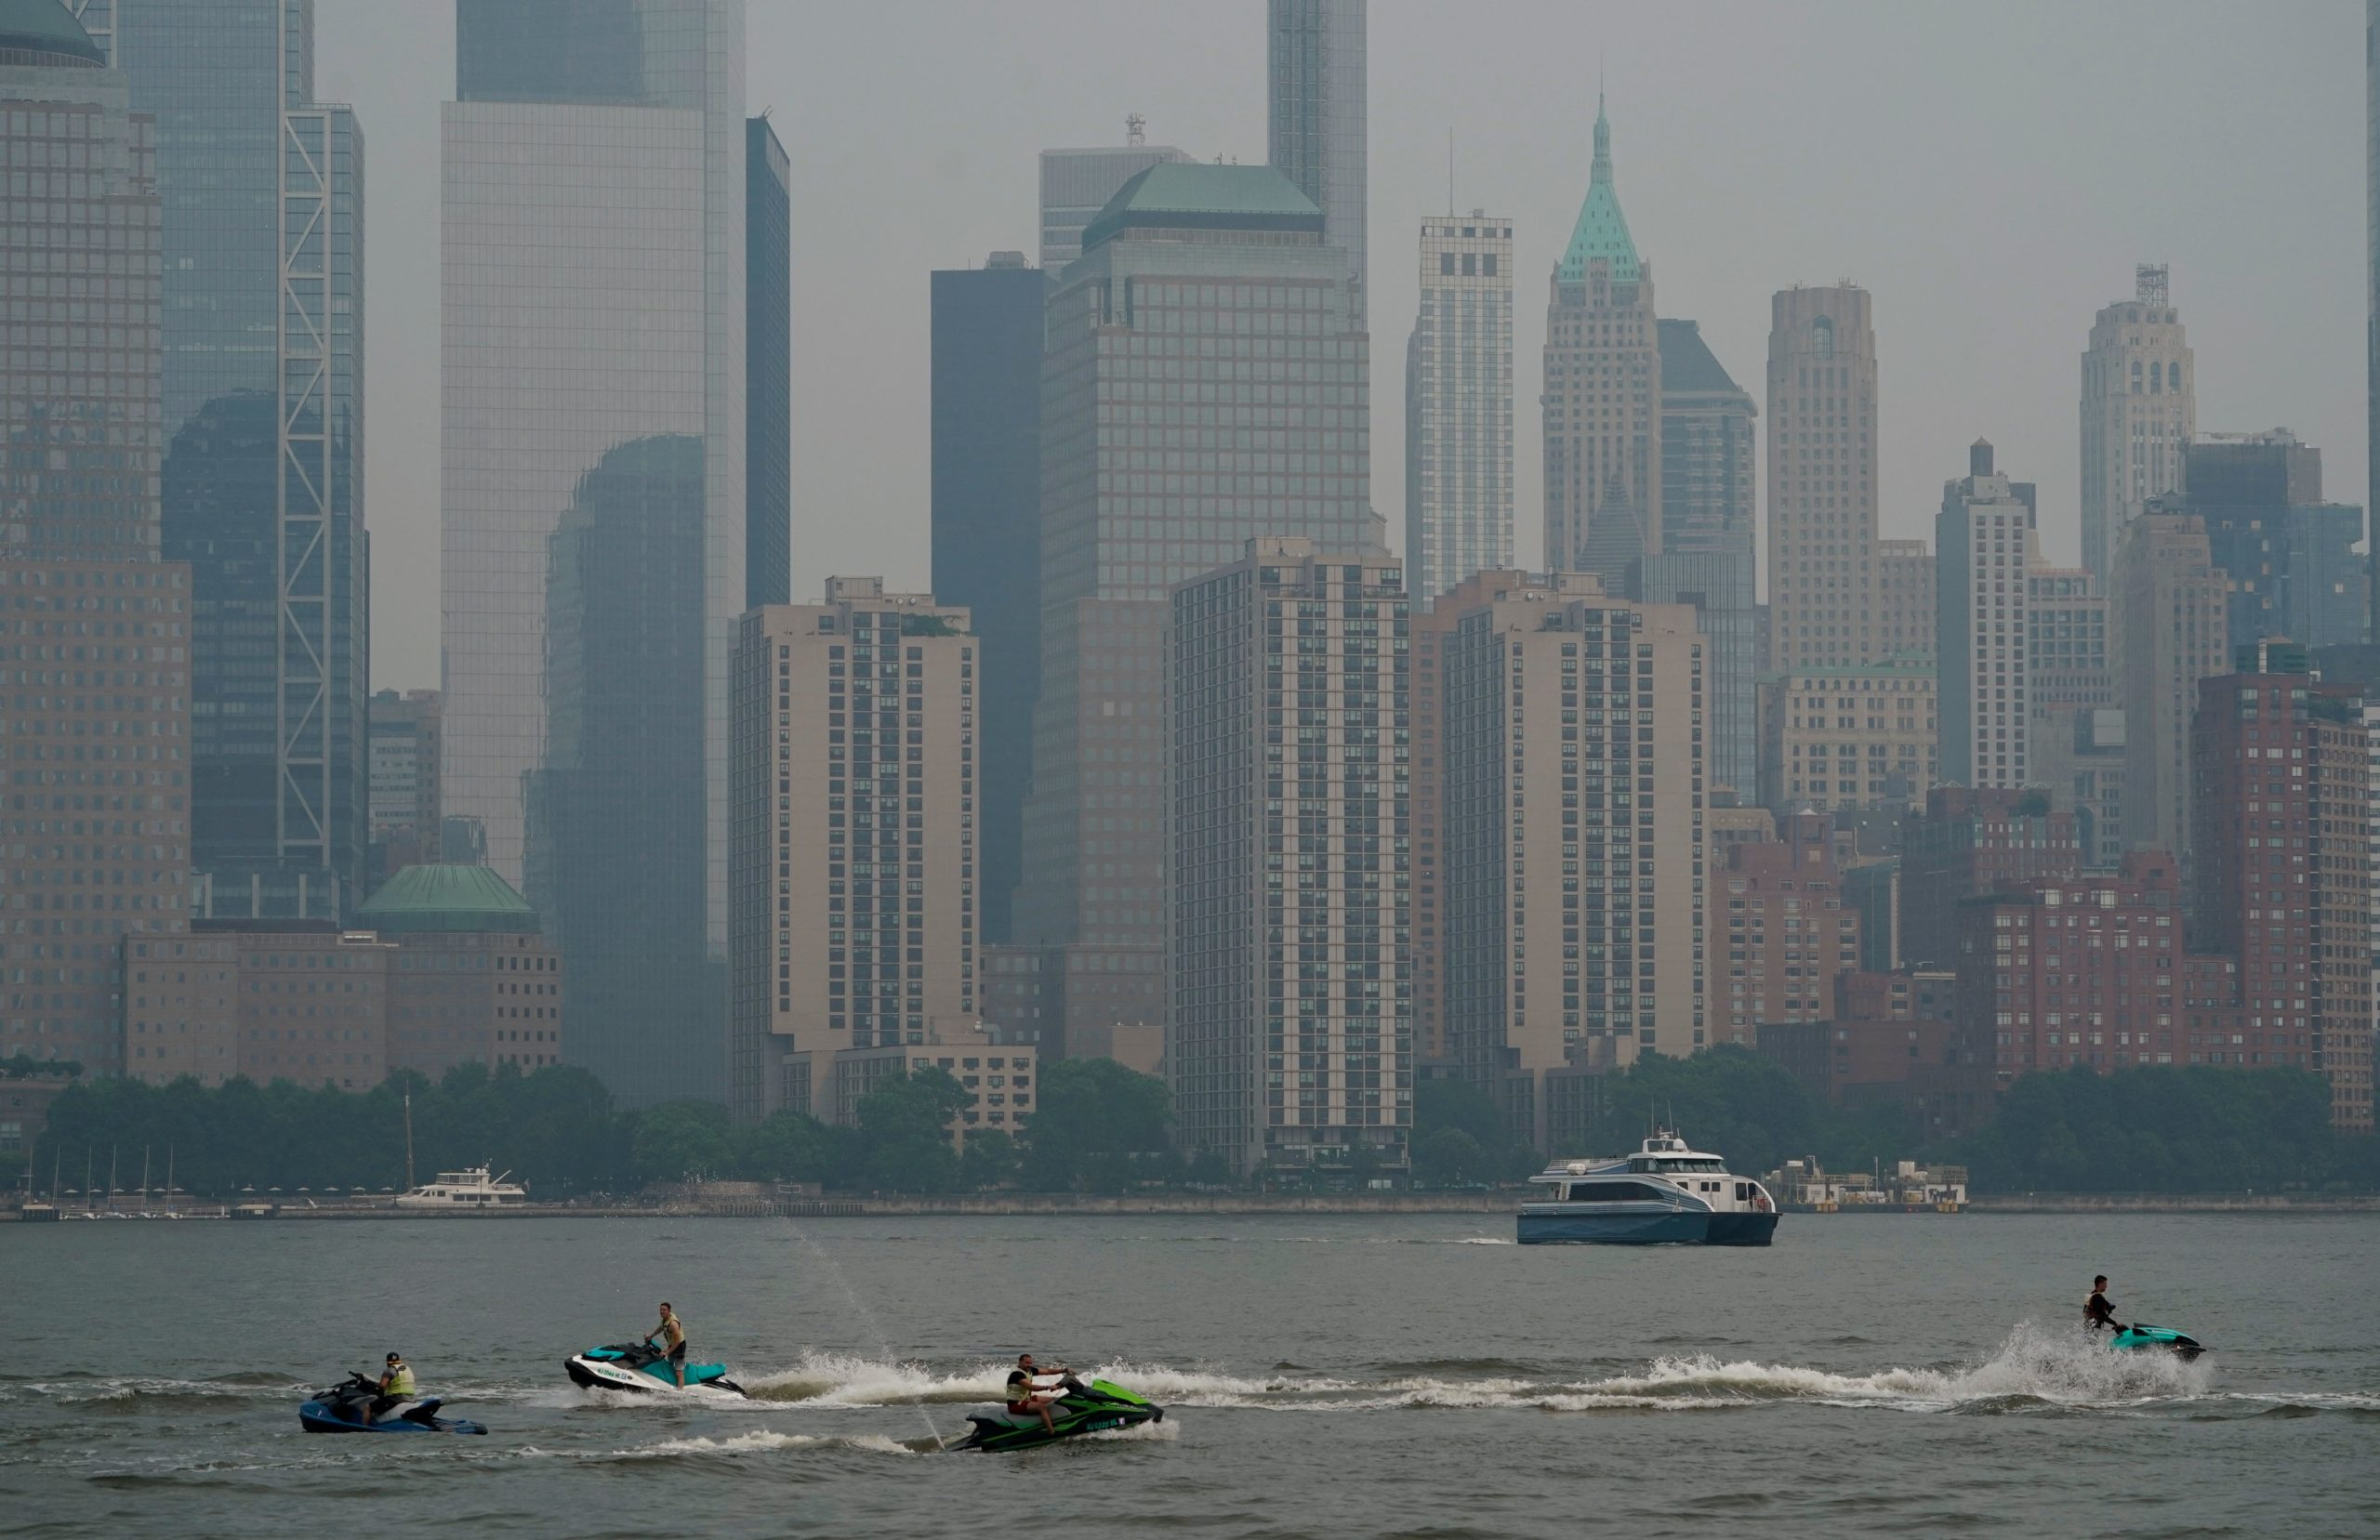 People ride jet skis near lower Manhattan on the Hudson River, July 20, 2021 as NY officials issue a air quality health advisory due to the west coast wildfires. (Photo by TIMOTHY A. CLARY/AFP via Getty Images)